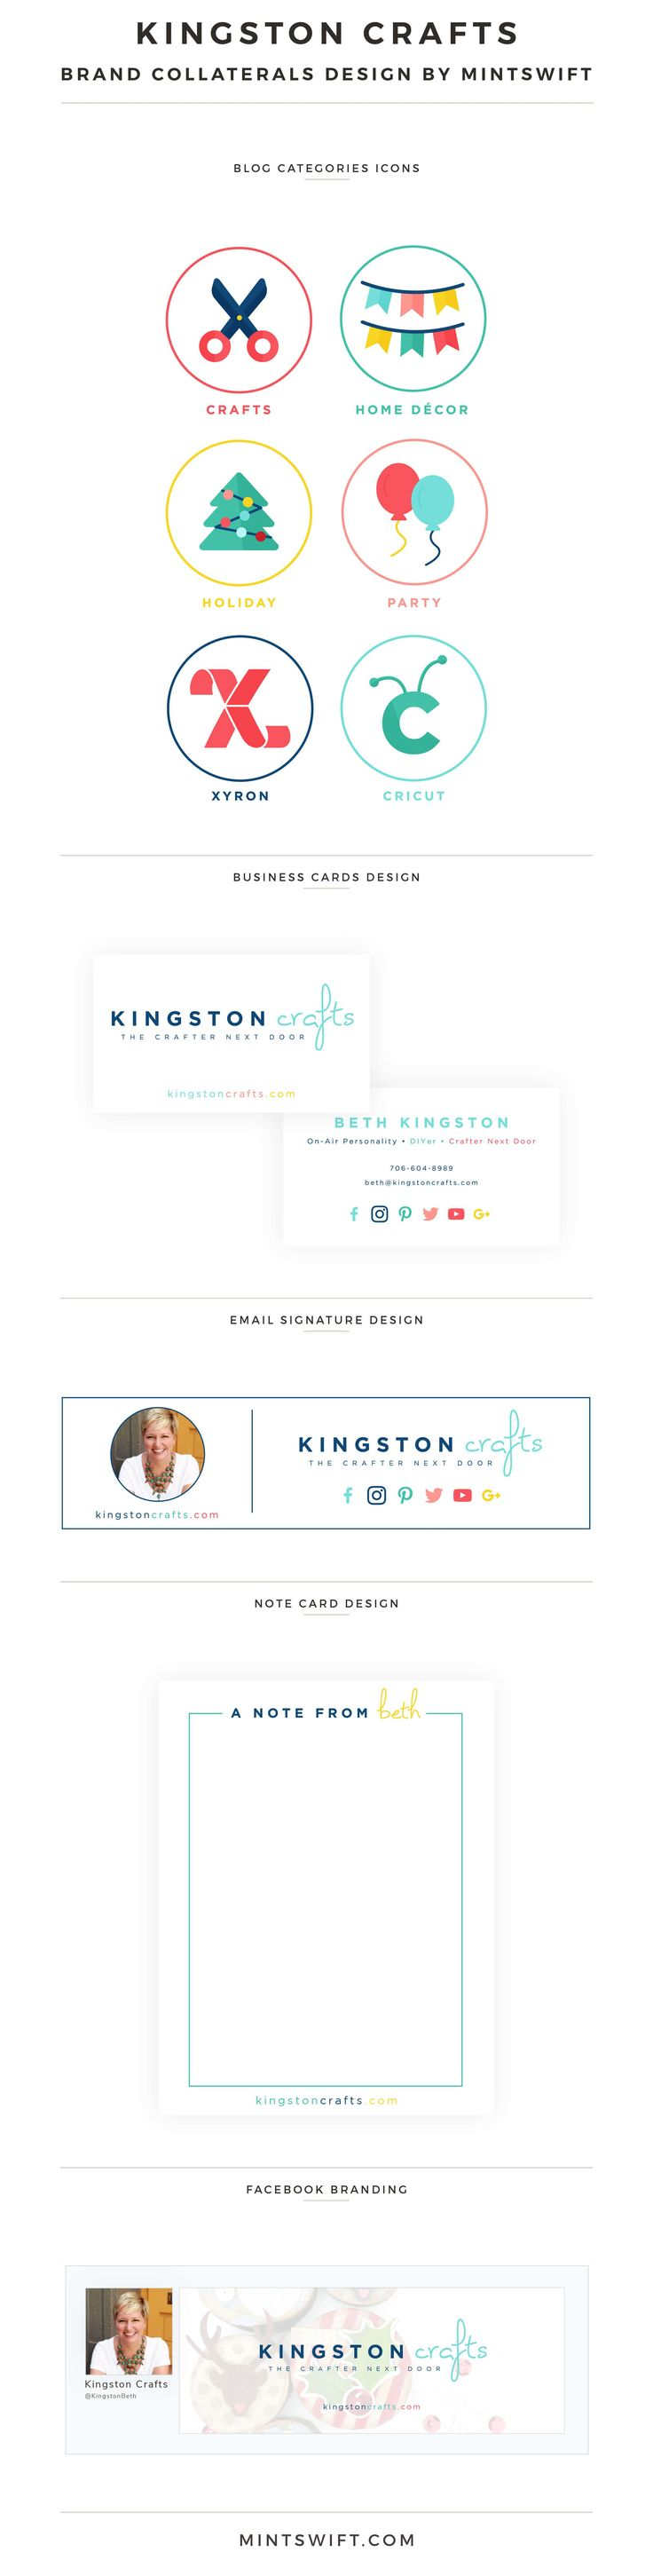 Brand Design for Kingston Crafts - MintSwift | Brand Collaterals Design | Brand Design | Brand Elements | Collateral Design | Logo Design | Brand Identity | Favicon Design | Alternative Logo Design | Submark Design | Social Media Design | Note Card Design | Email Signature Design | Brand Board | Brand Style Guide | Colour Palette | Facebook Branding | Blog post categories design | Business Cards Design | Brand Design Package | MintSwift Design | MintSwift Portfolio | MintSwift...